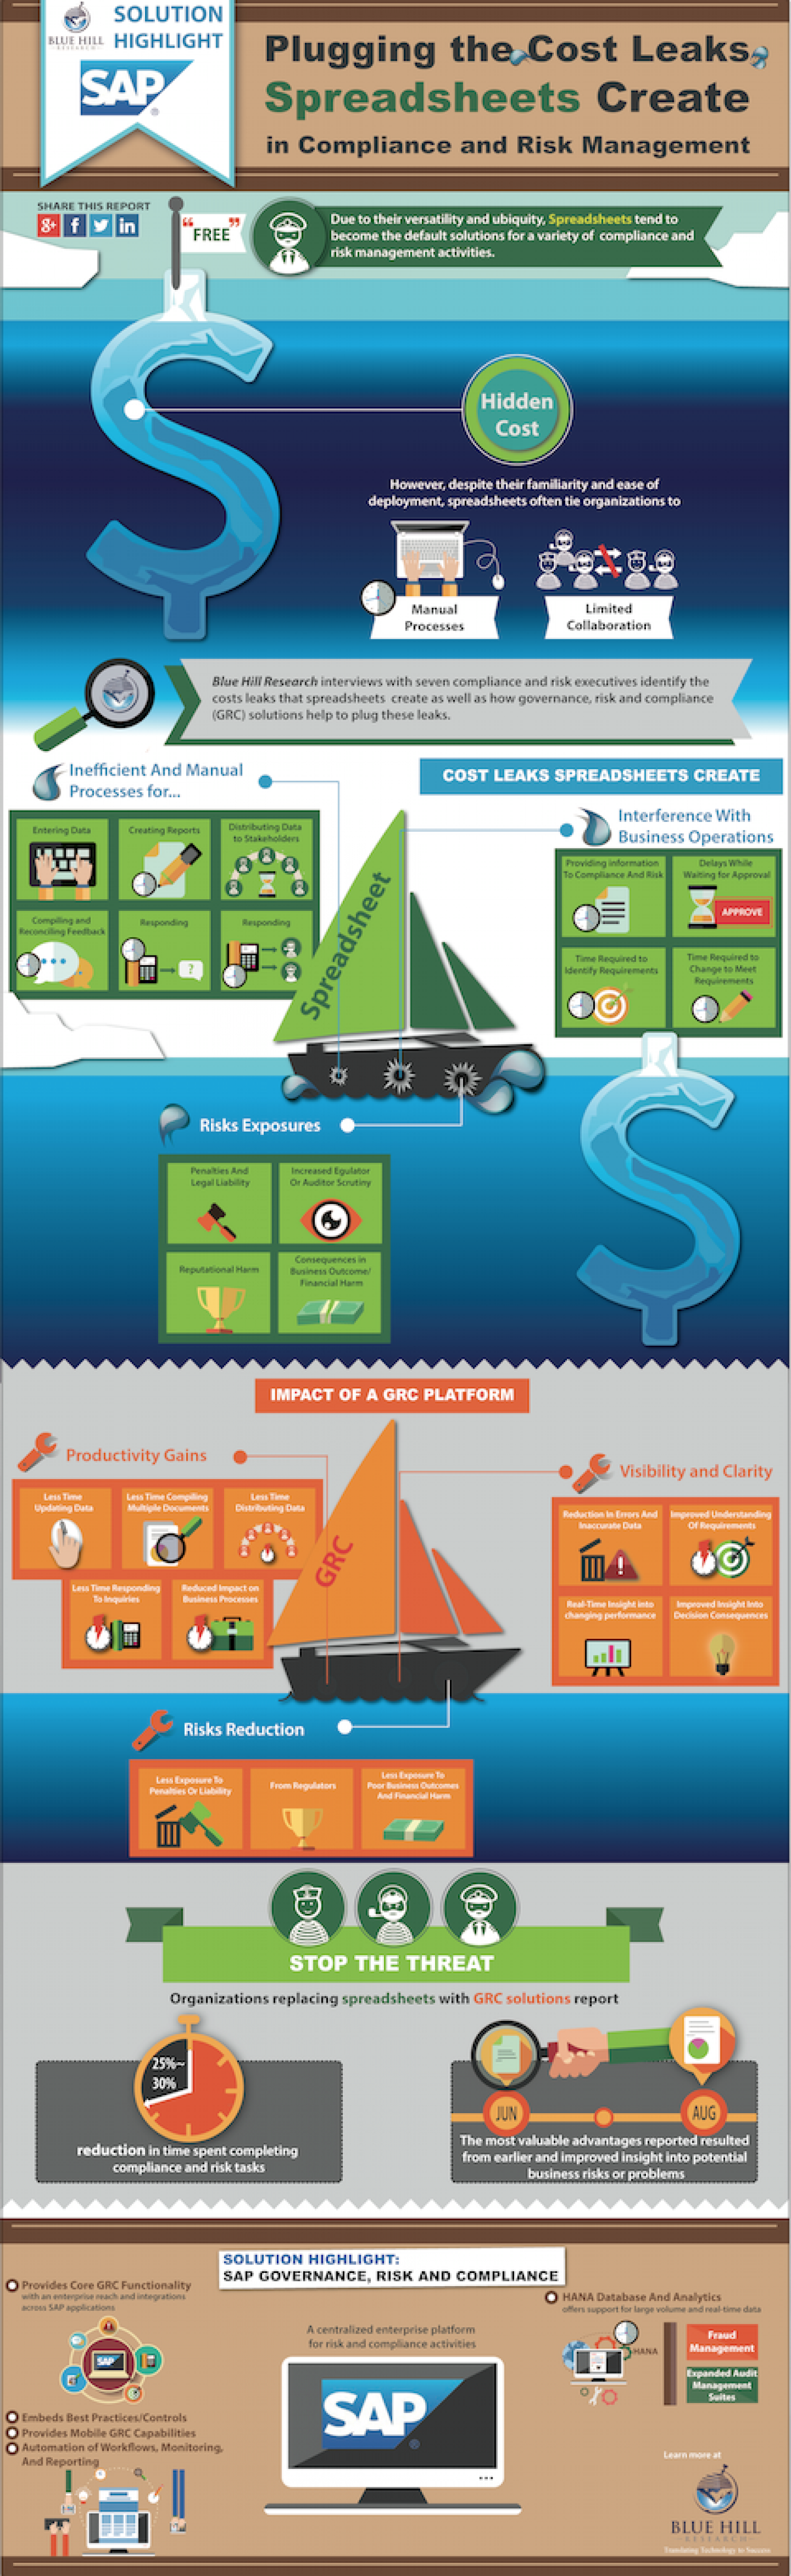 SAP GRC's Role in Removing Spreadsheet Costs in Compliance and Risk Management Infographic